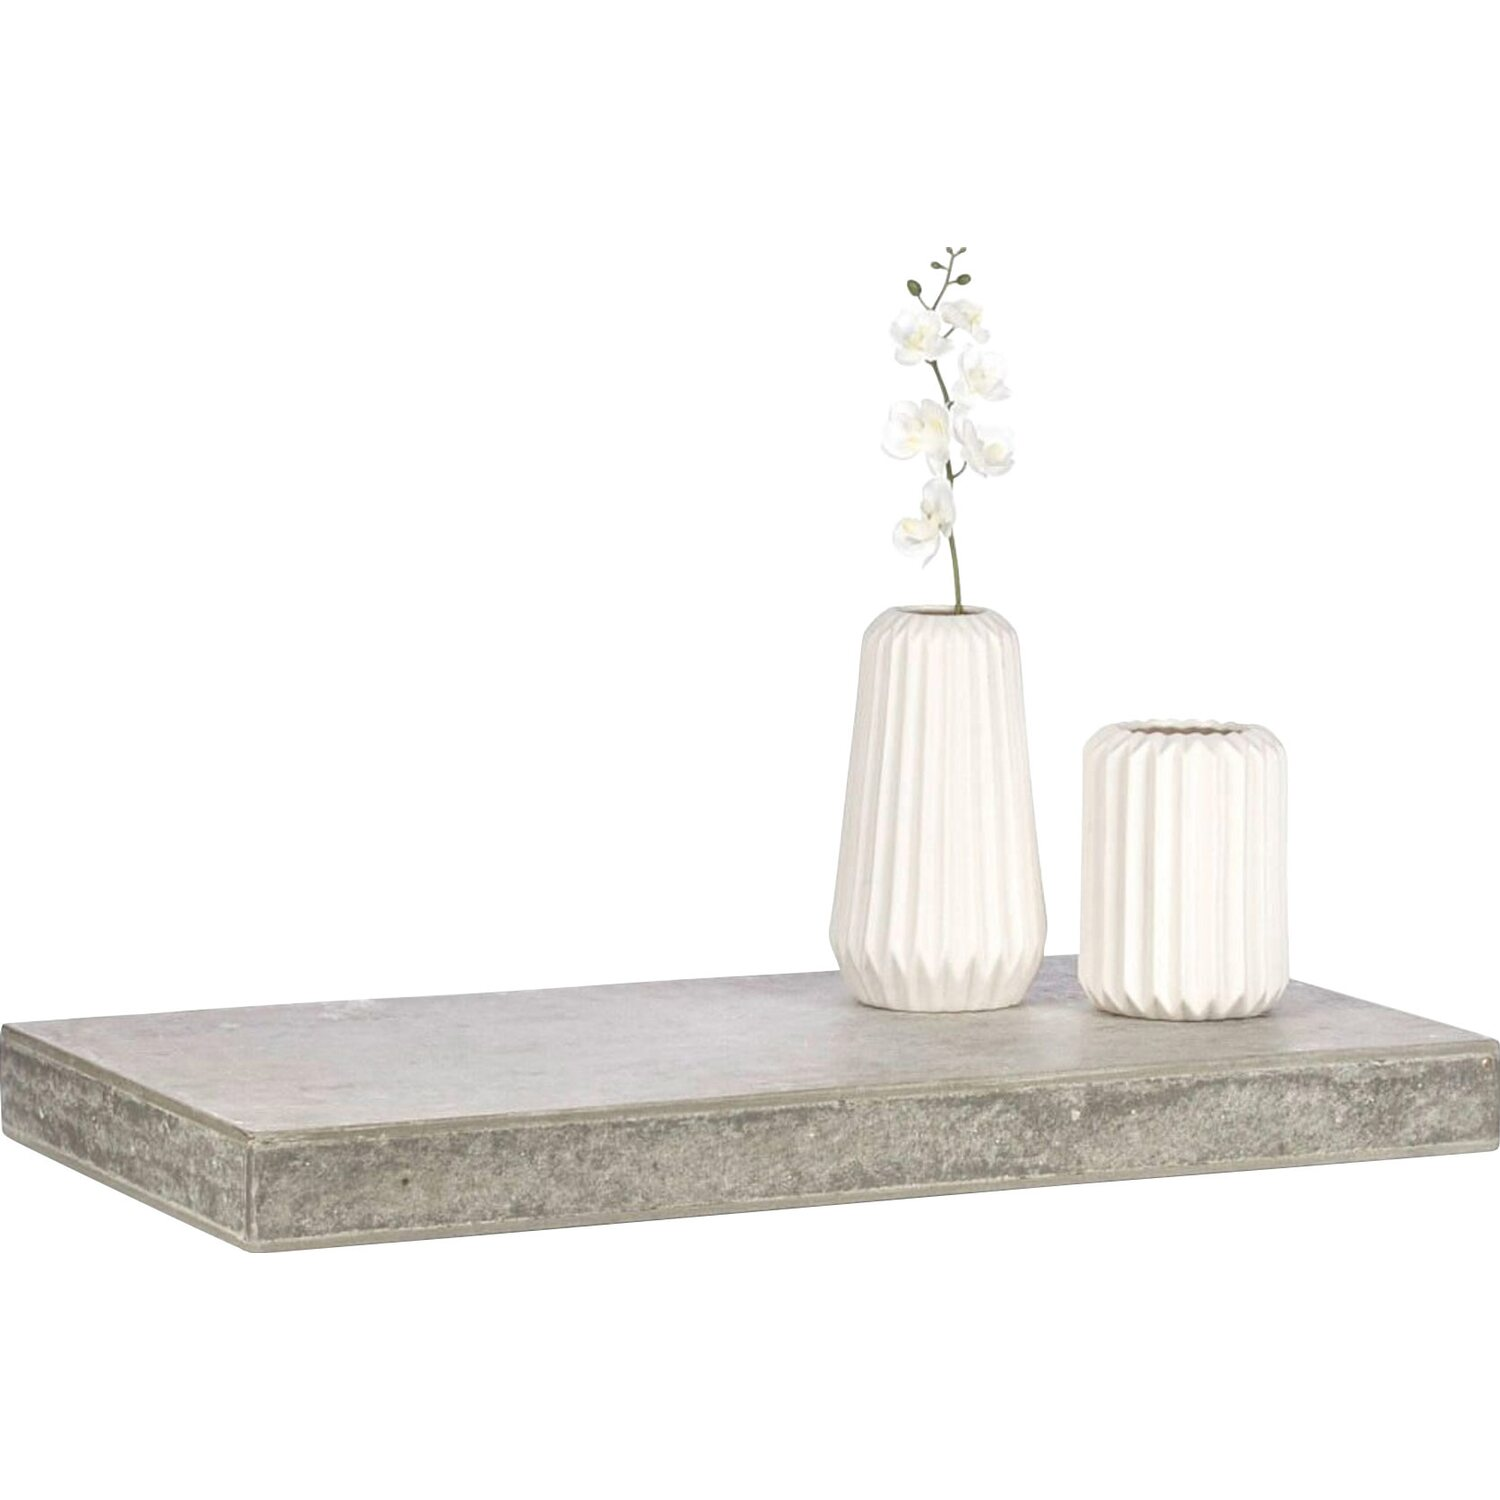 Best of home Wandregal Betonoptik 5 cm x 60 cm x 30 cm